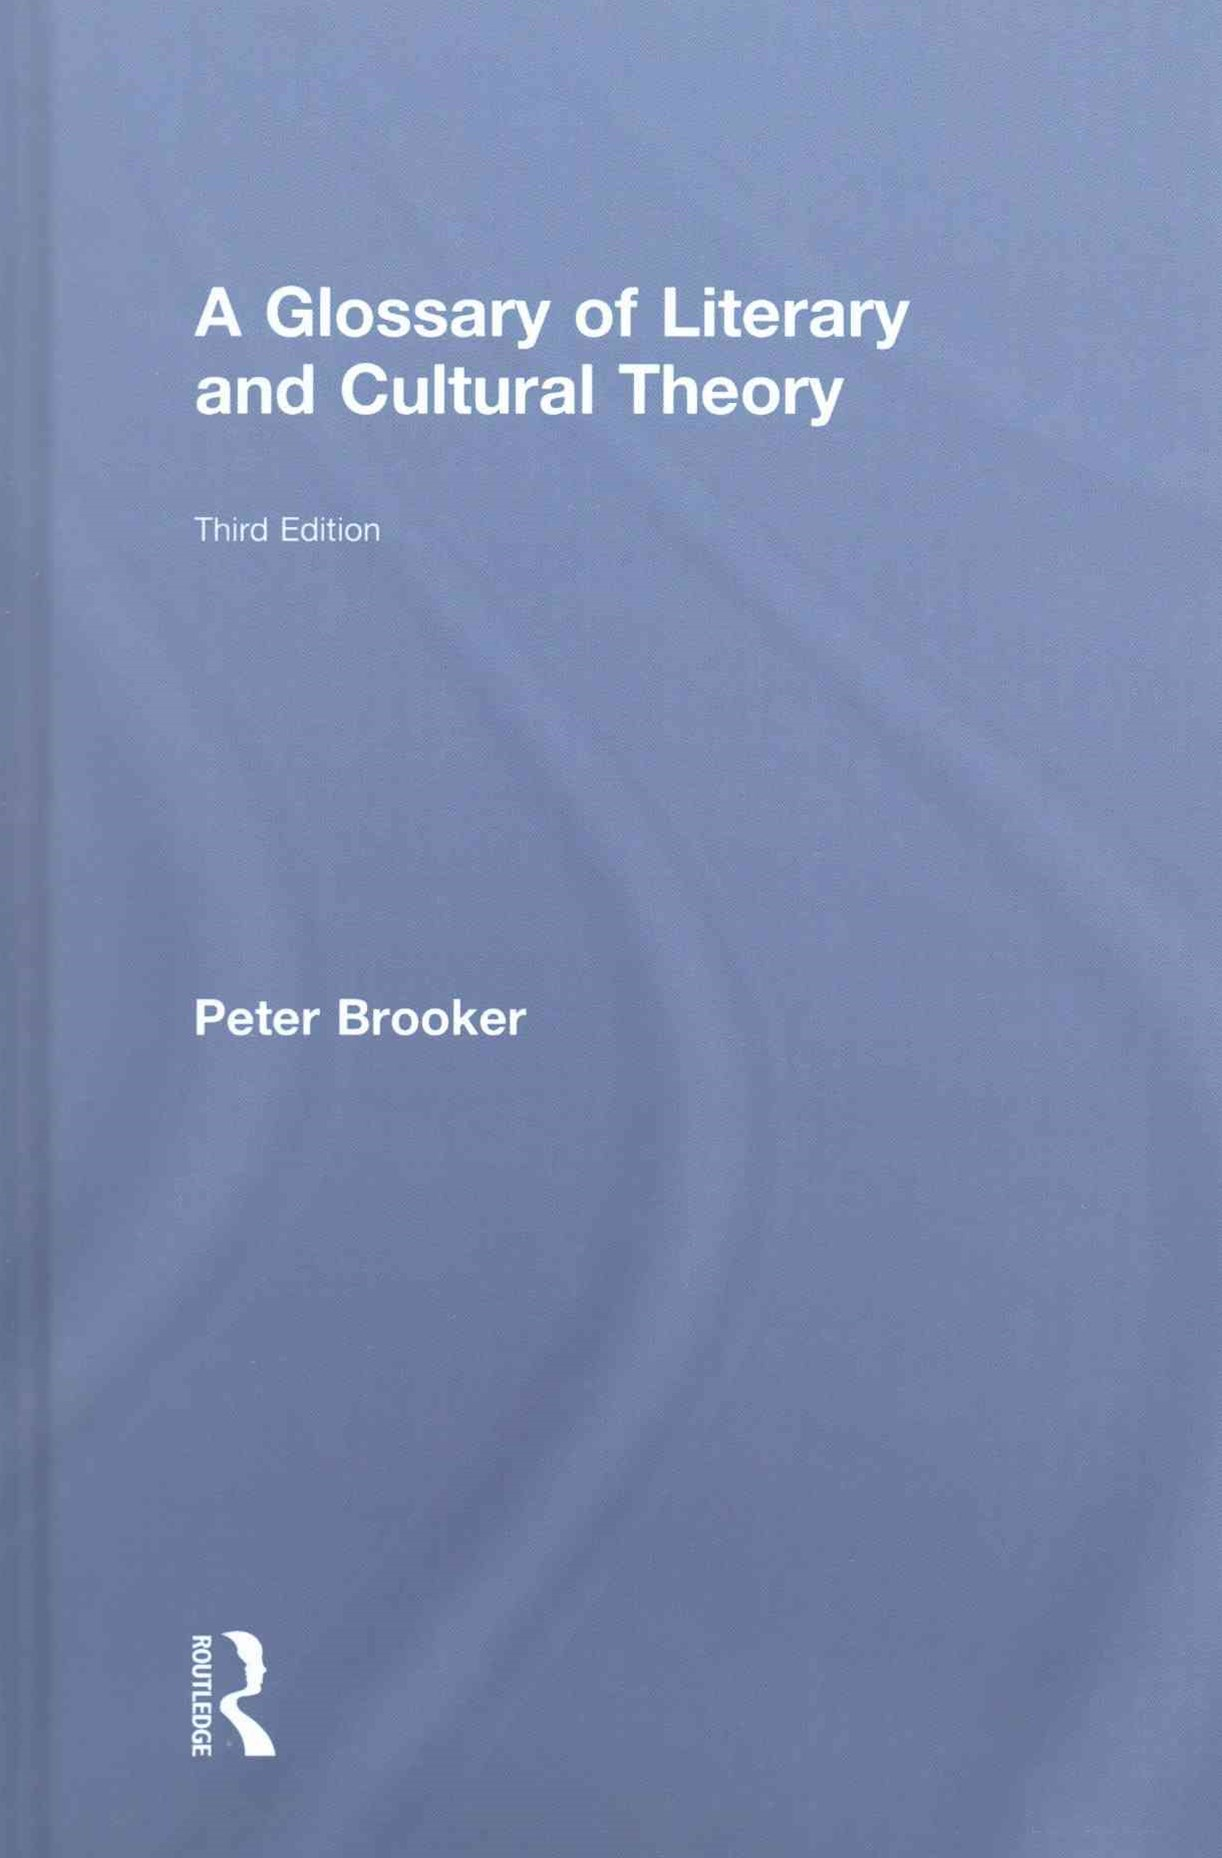 Glossary of Literary and Cultural Theory